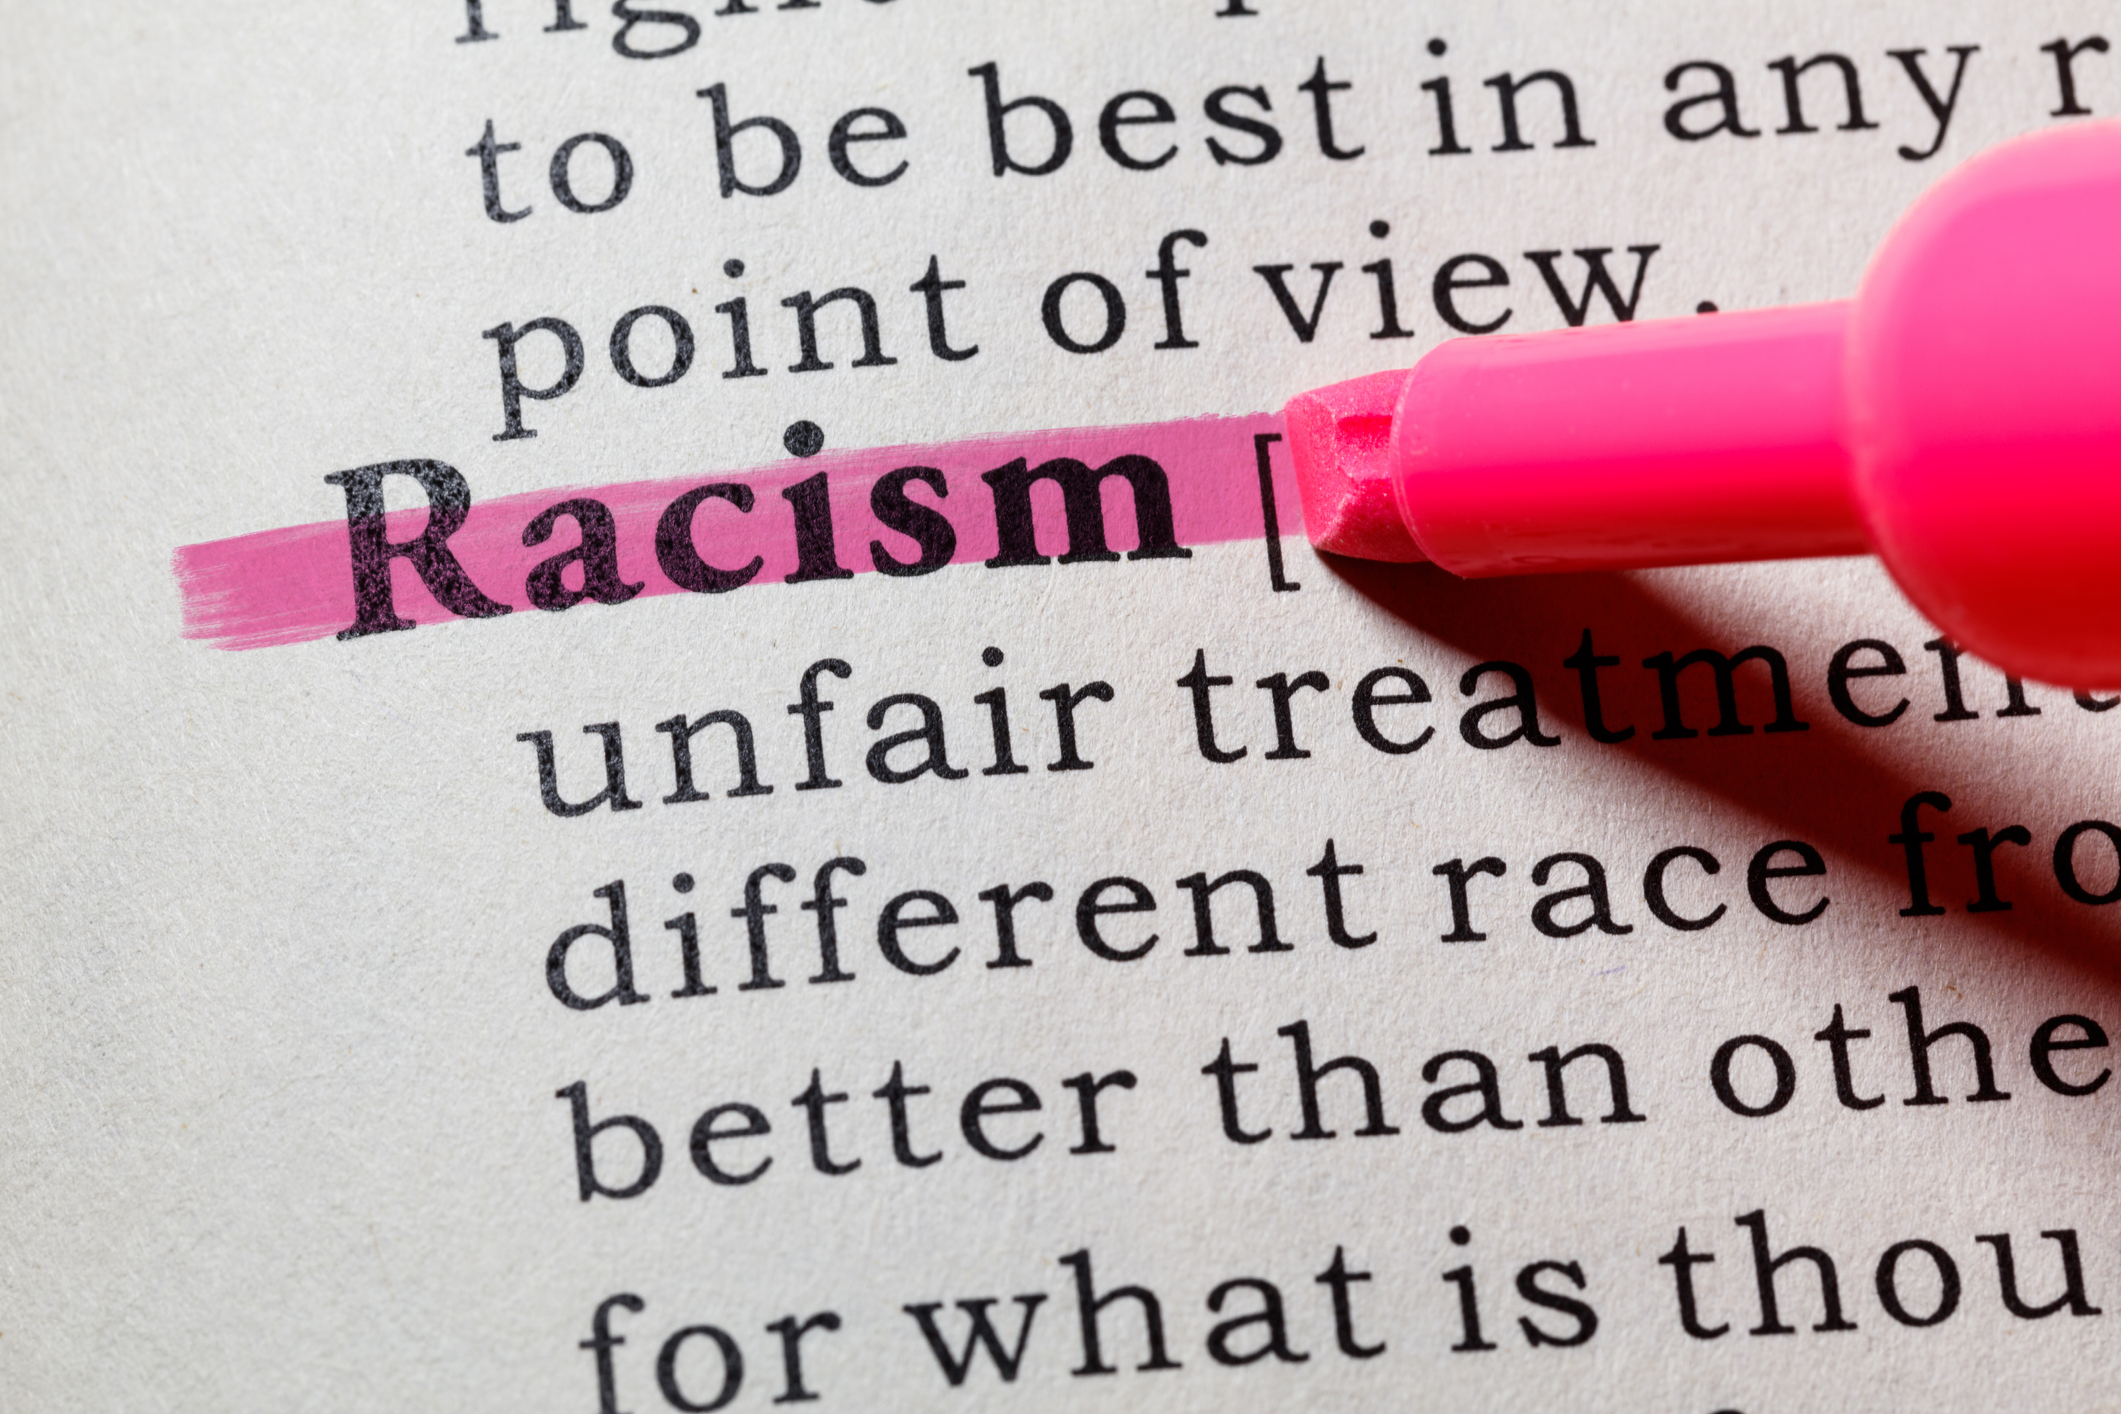 Definitive words in definition of racism. Image credit: iStock